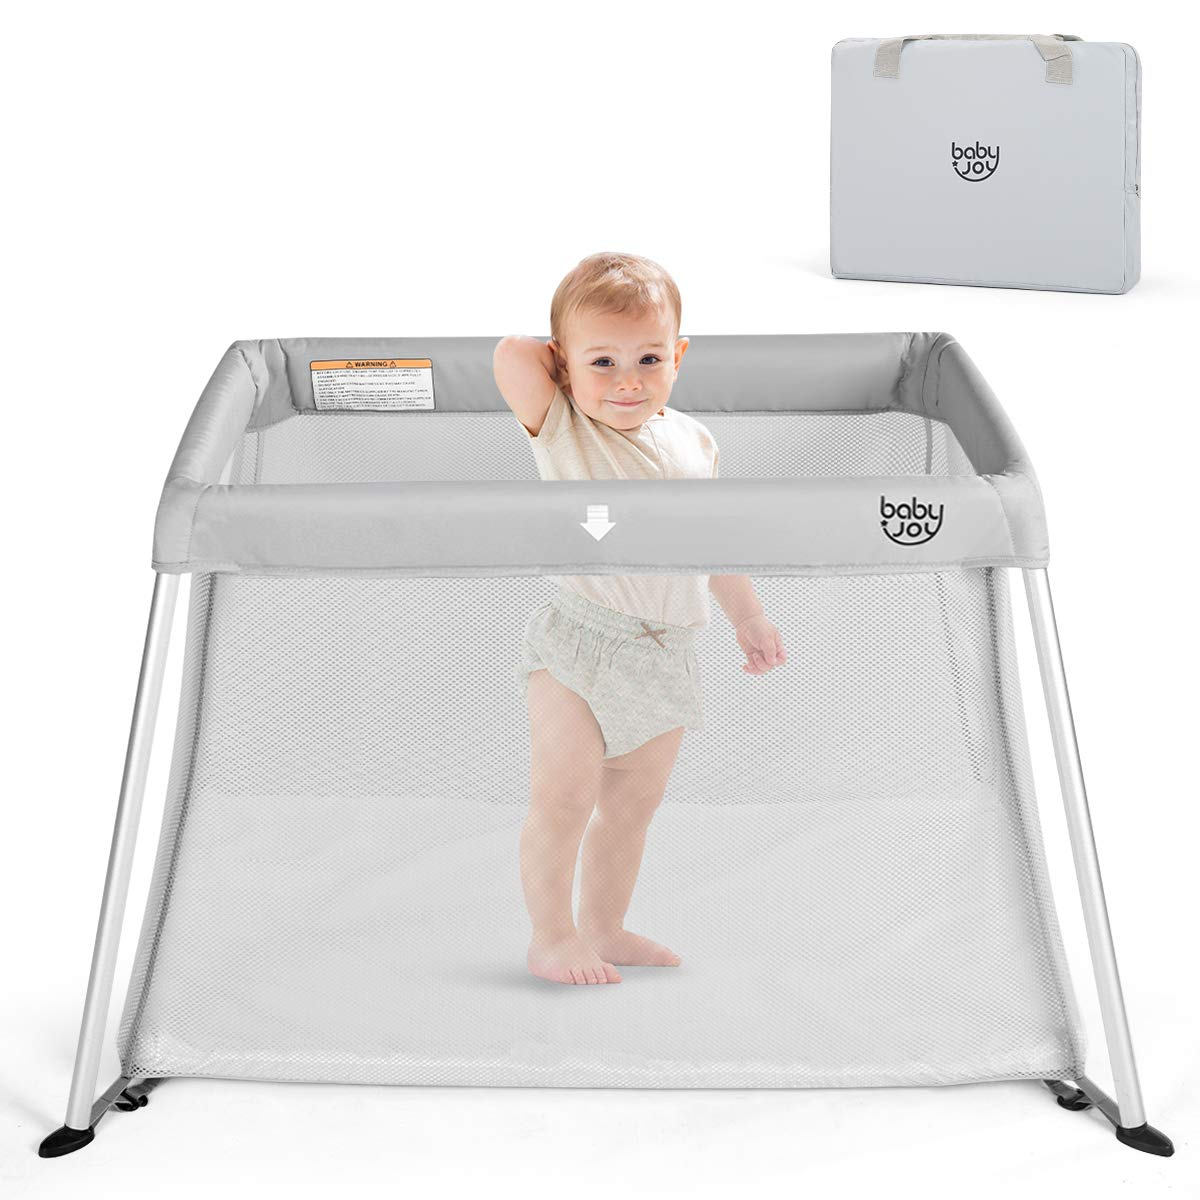 BABY JOY Baby Playpen, Ultra-Light Aluminum Portable Foldable Travel Crib with Comfy Mattress Oxford Carry Bag, Gray